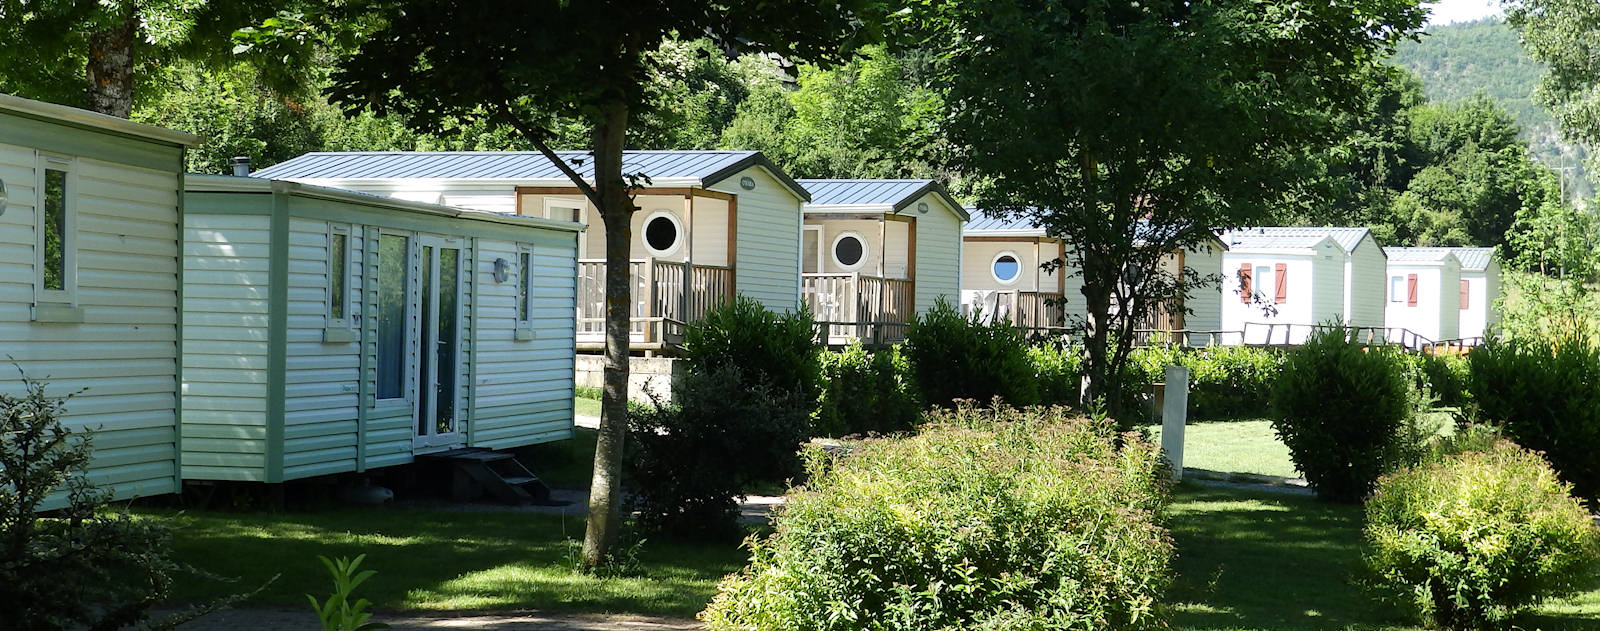 location mobilhome lozere